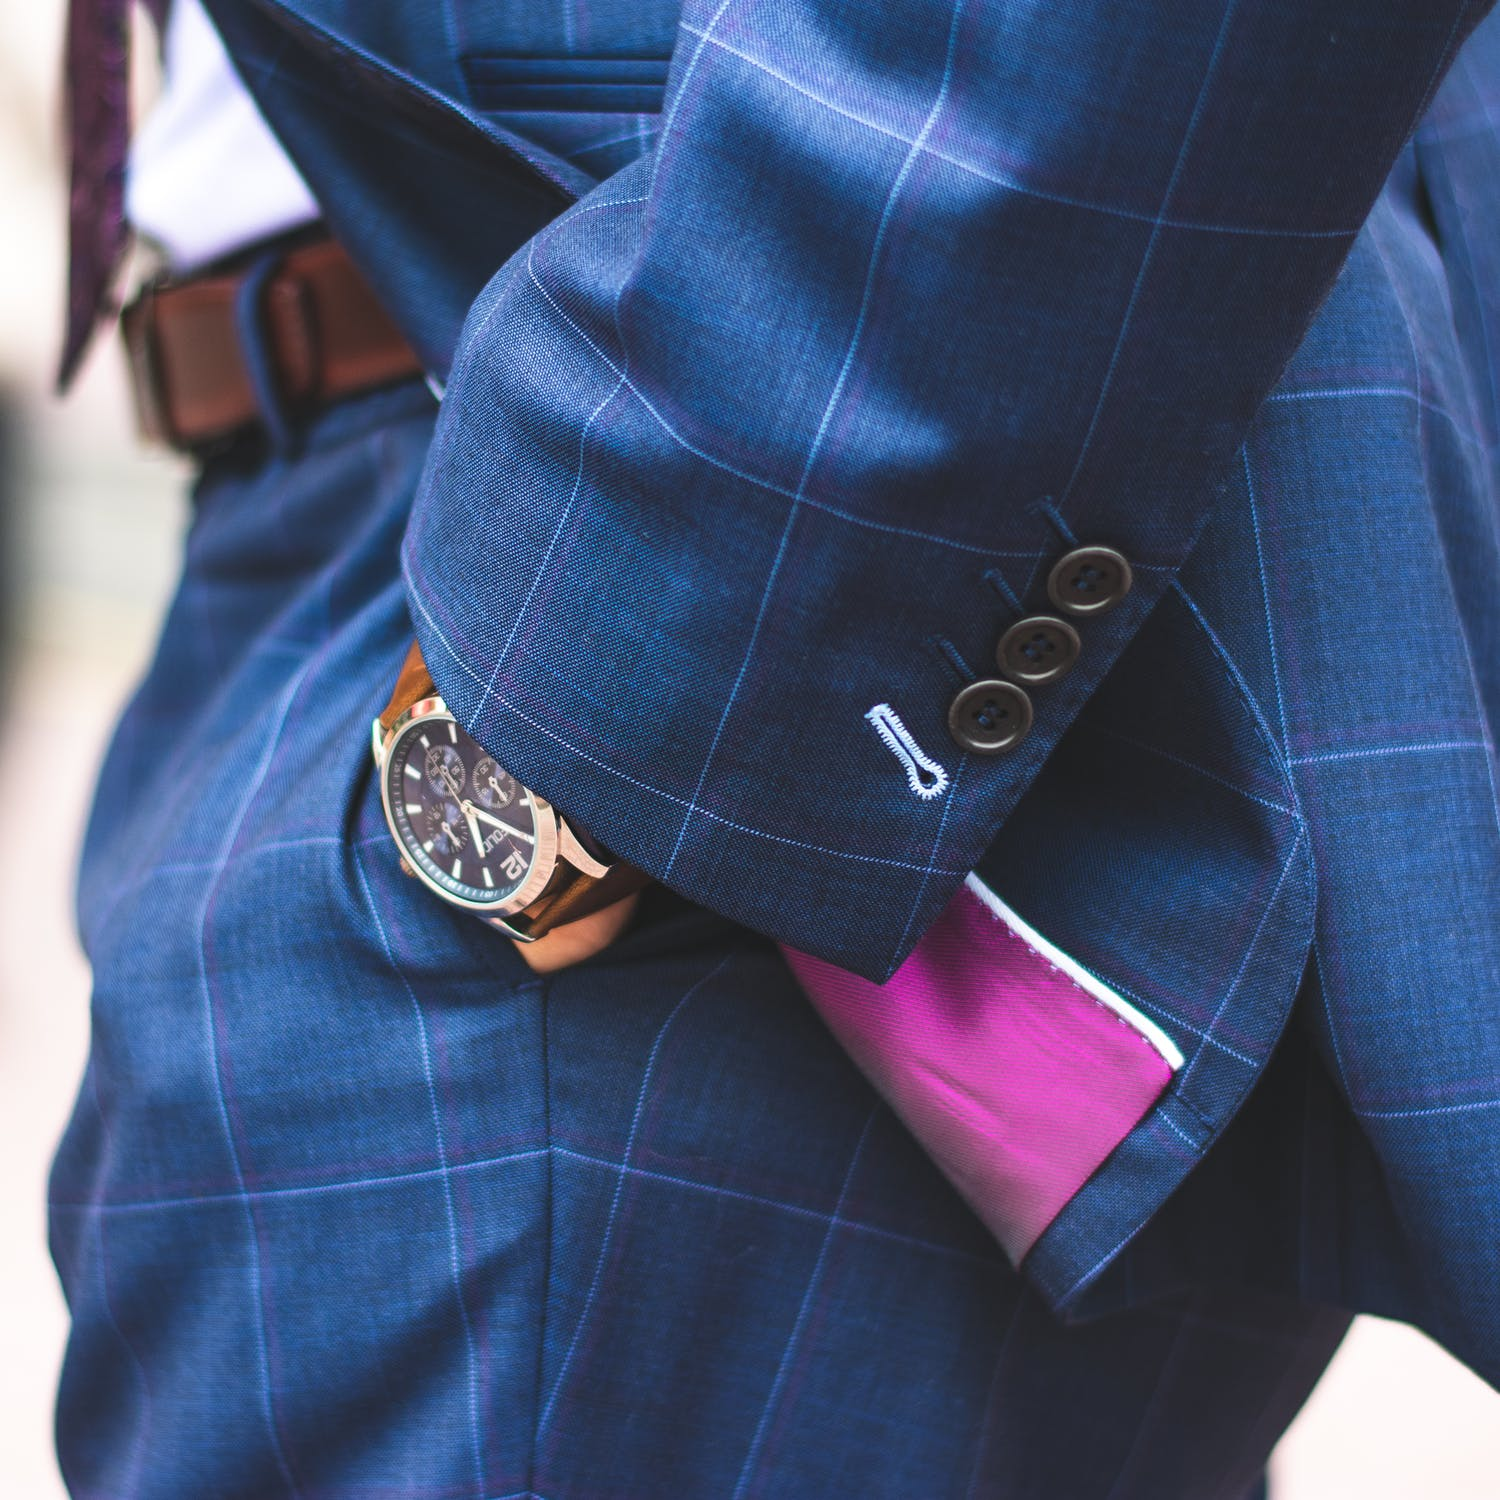 Watch Style, Watch Buying Guide